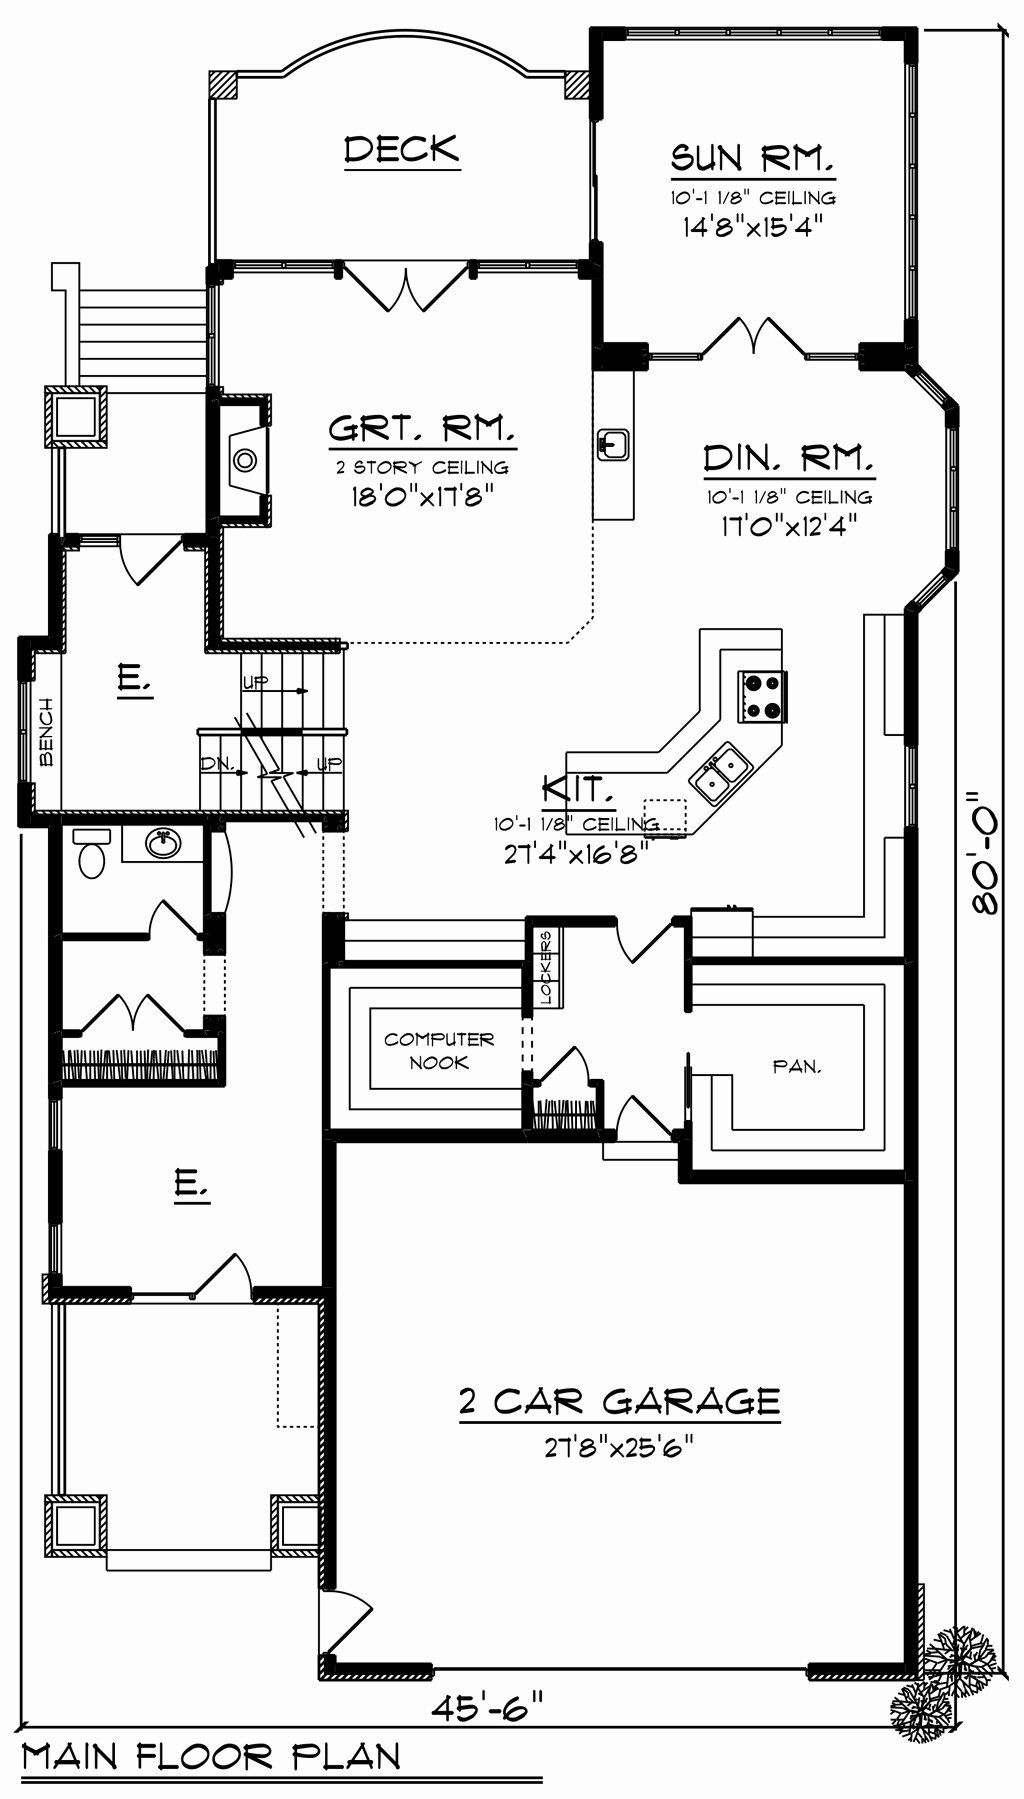 4 Bedroom Rectangular House Plans Awesome 21 Stylishly Floor Plan 2 Story Rectangle That So Art In 2020 Craftsman Floor Plans House Plans Craftsman Style House Plans